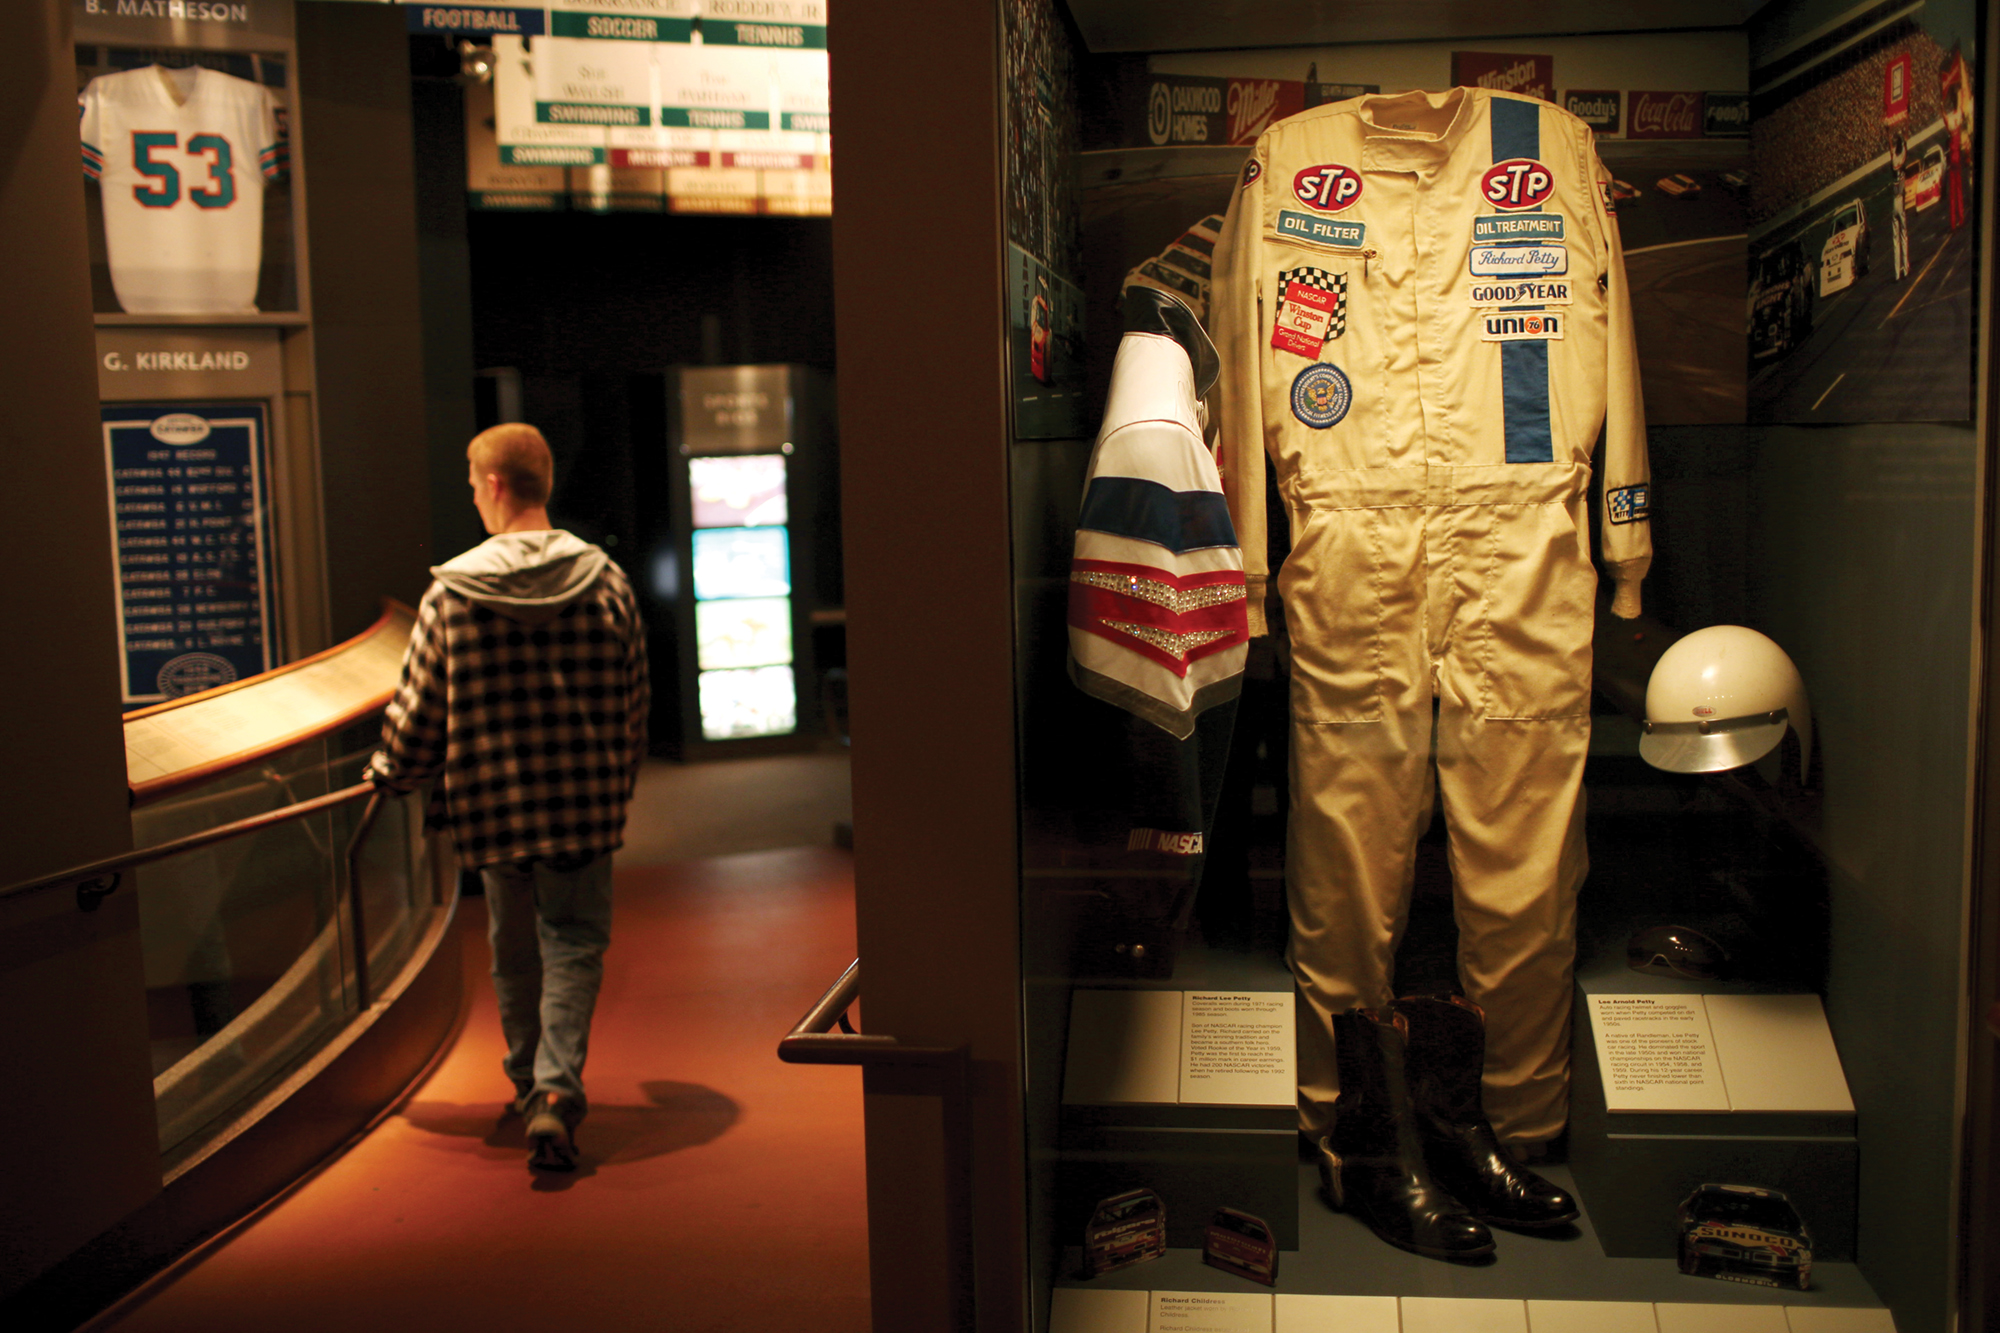 Richard Lee Petty's coveralls from 1971 stand proudly next to his car.